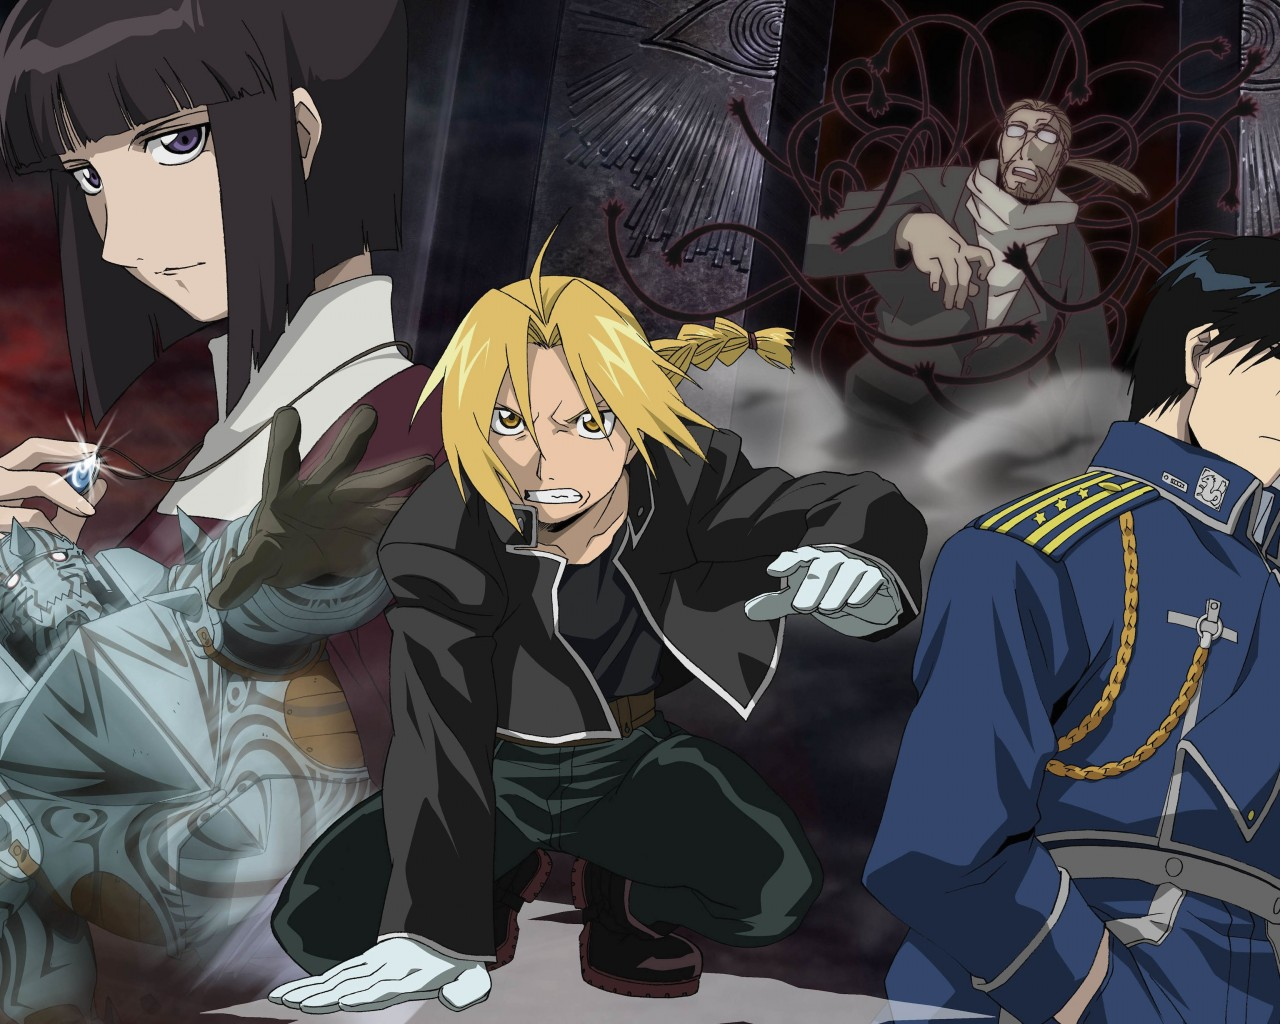 Fullmetal Alchemist Wallpaper for Desktop 1280x1024